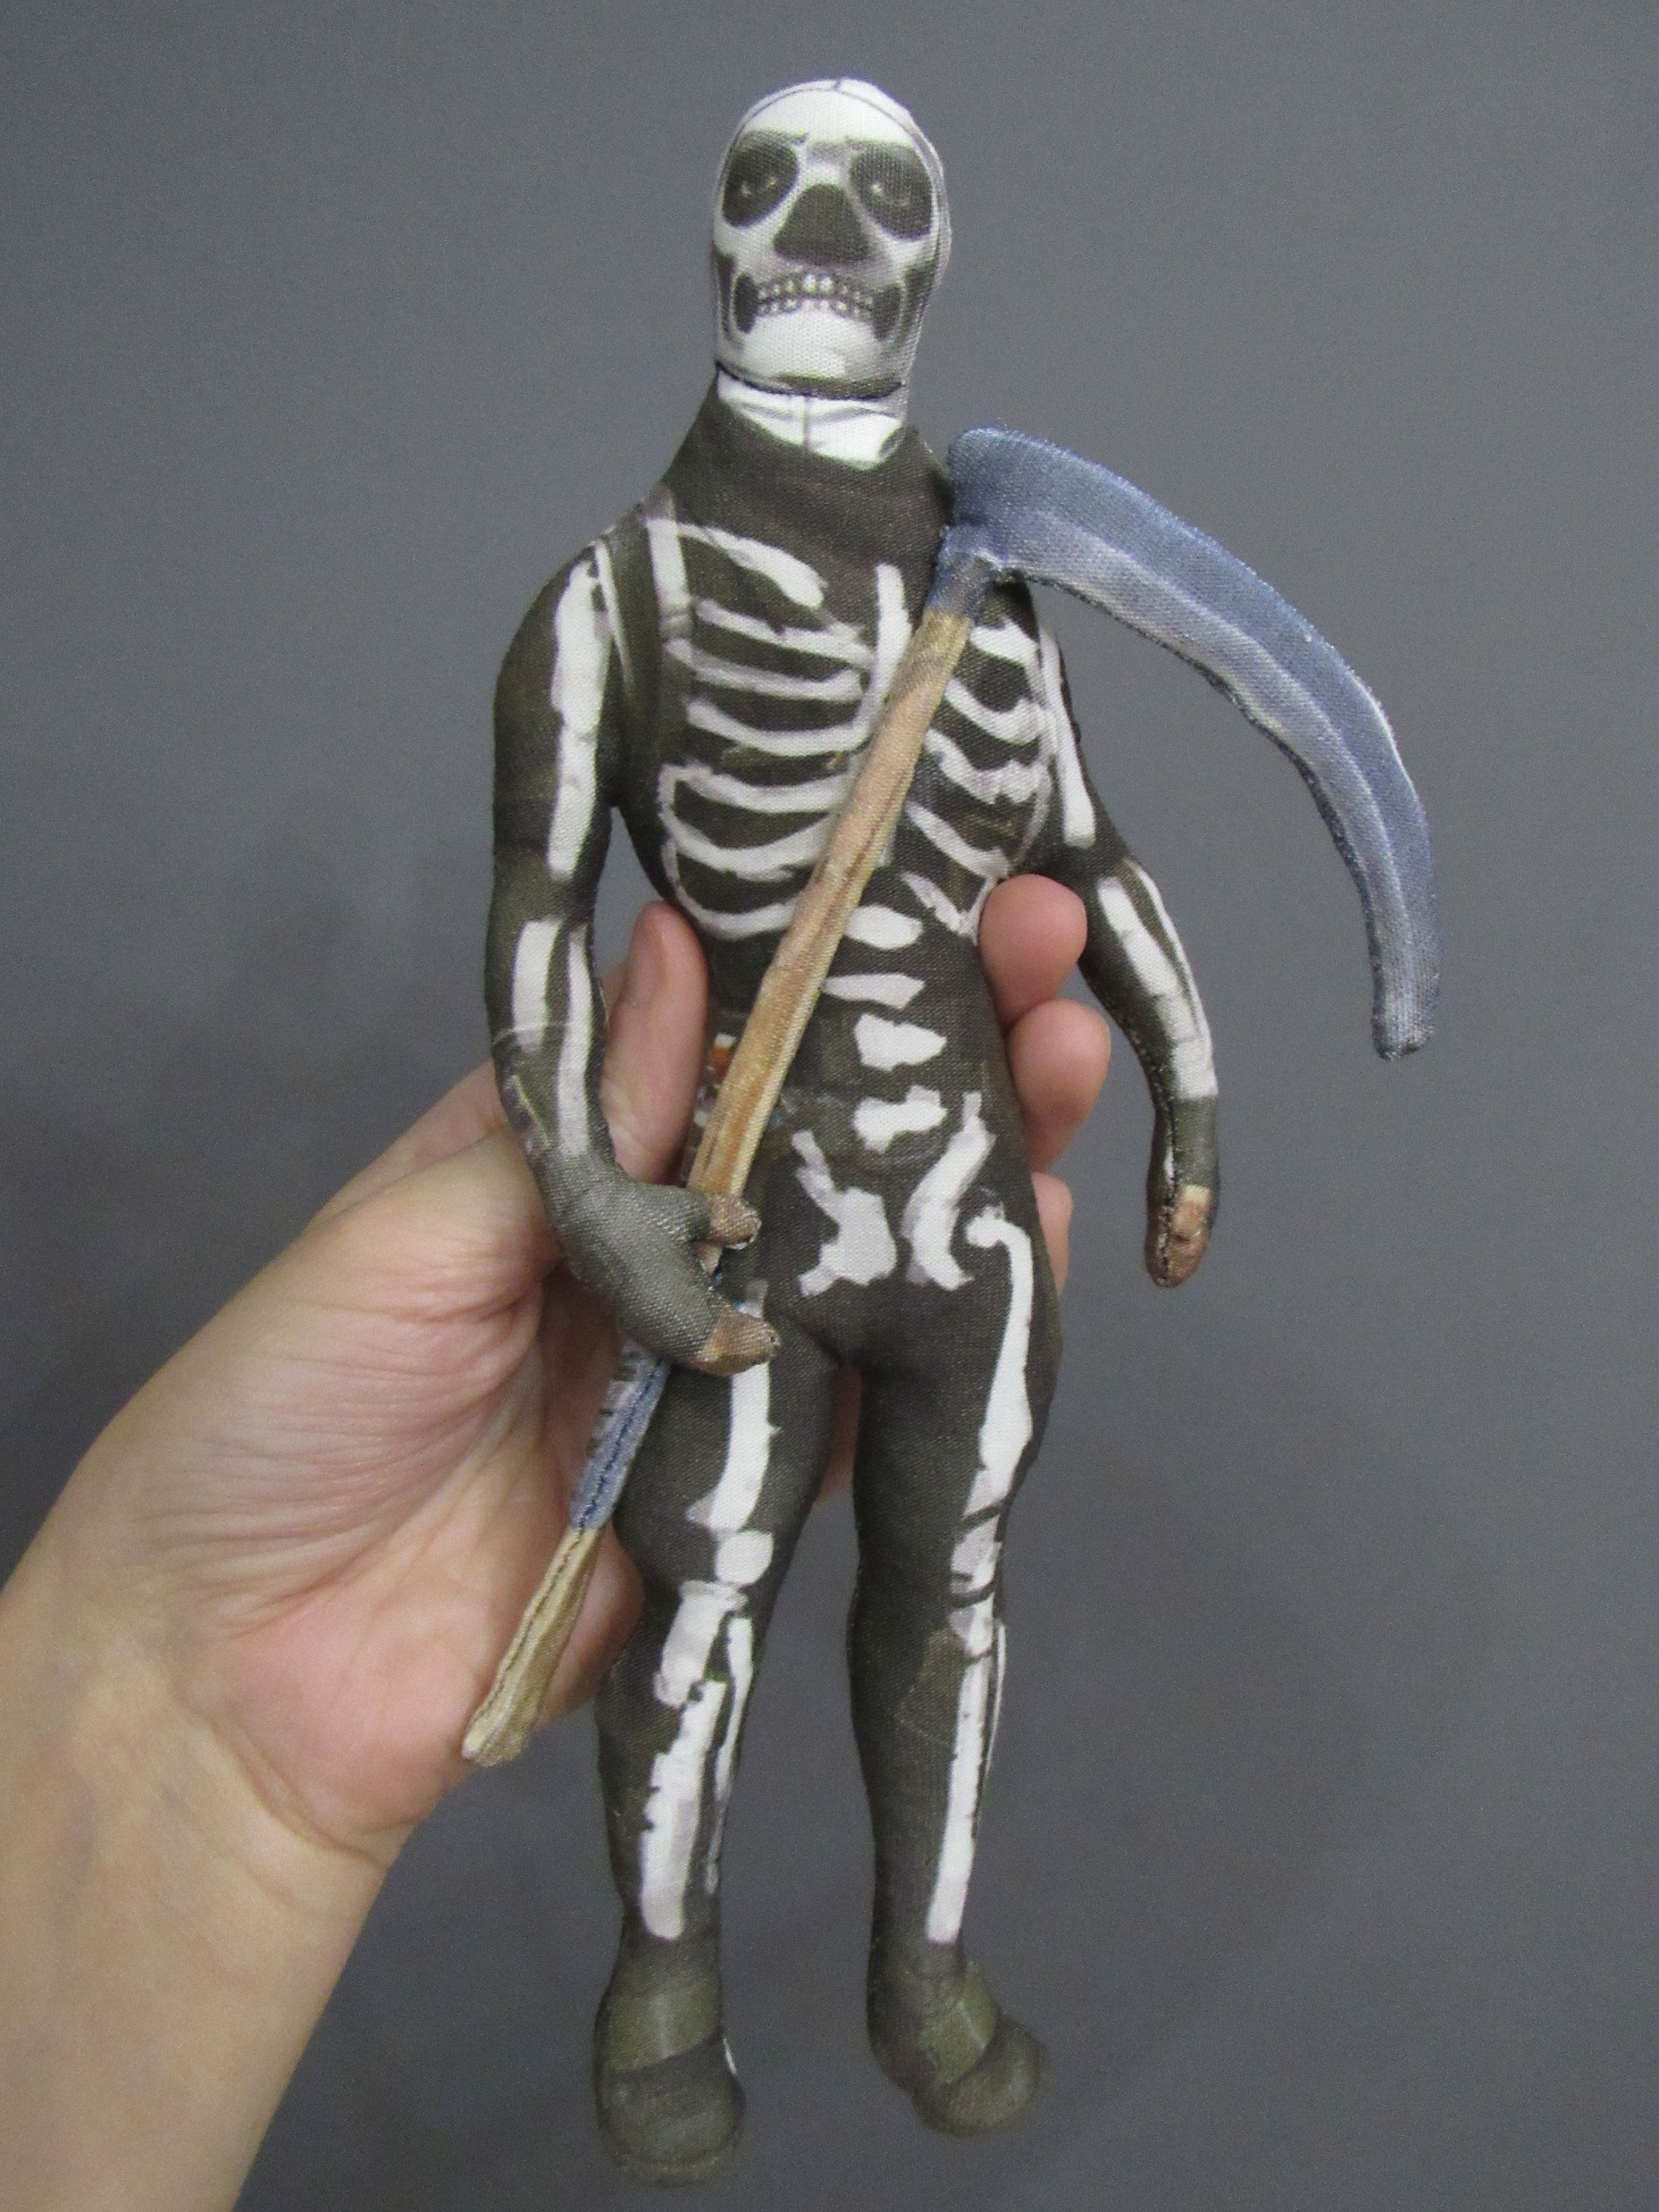 Skull trooper with the pickaxe soft toy of Fortnite Battle